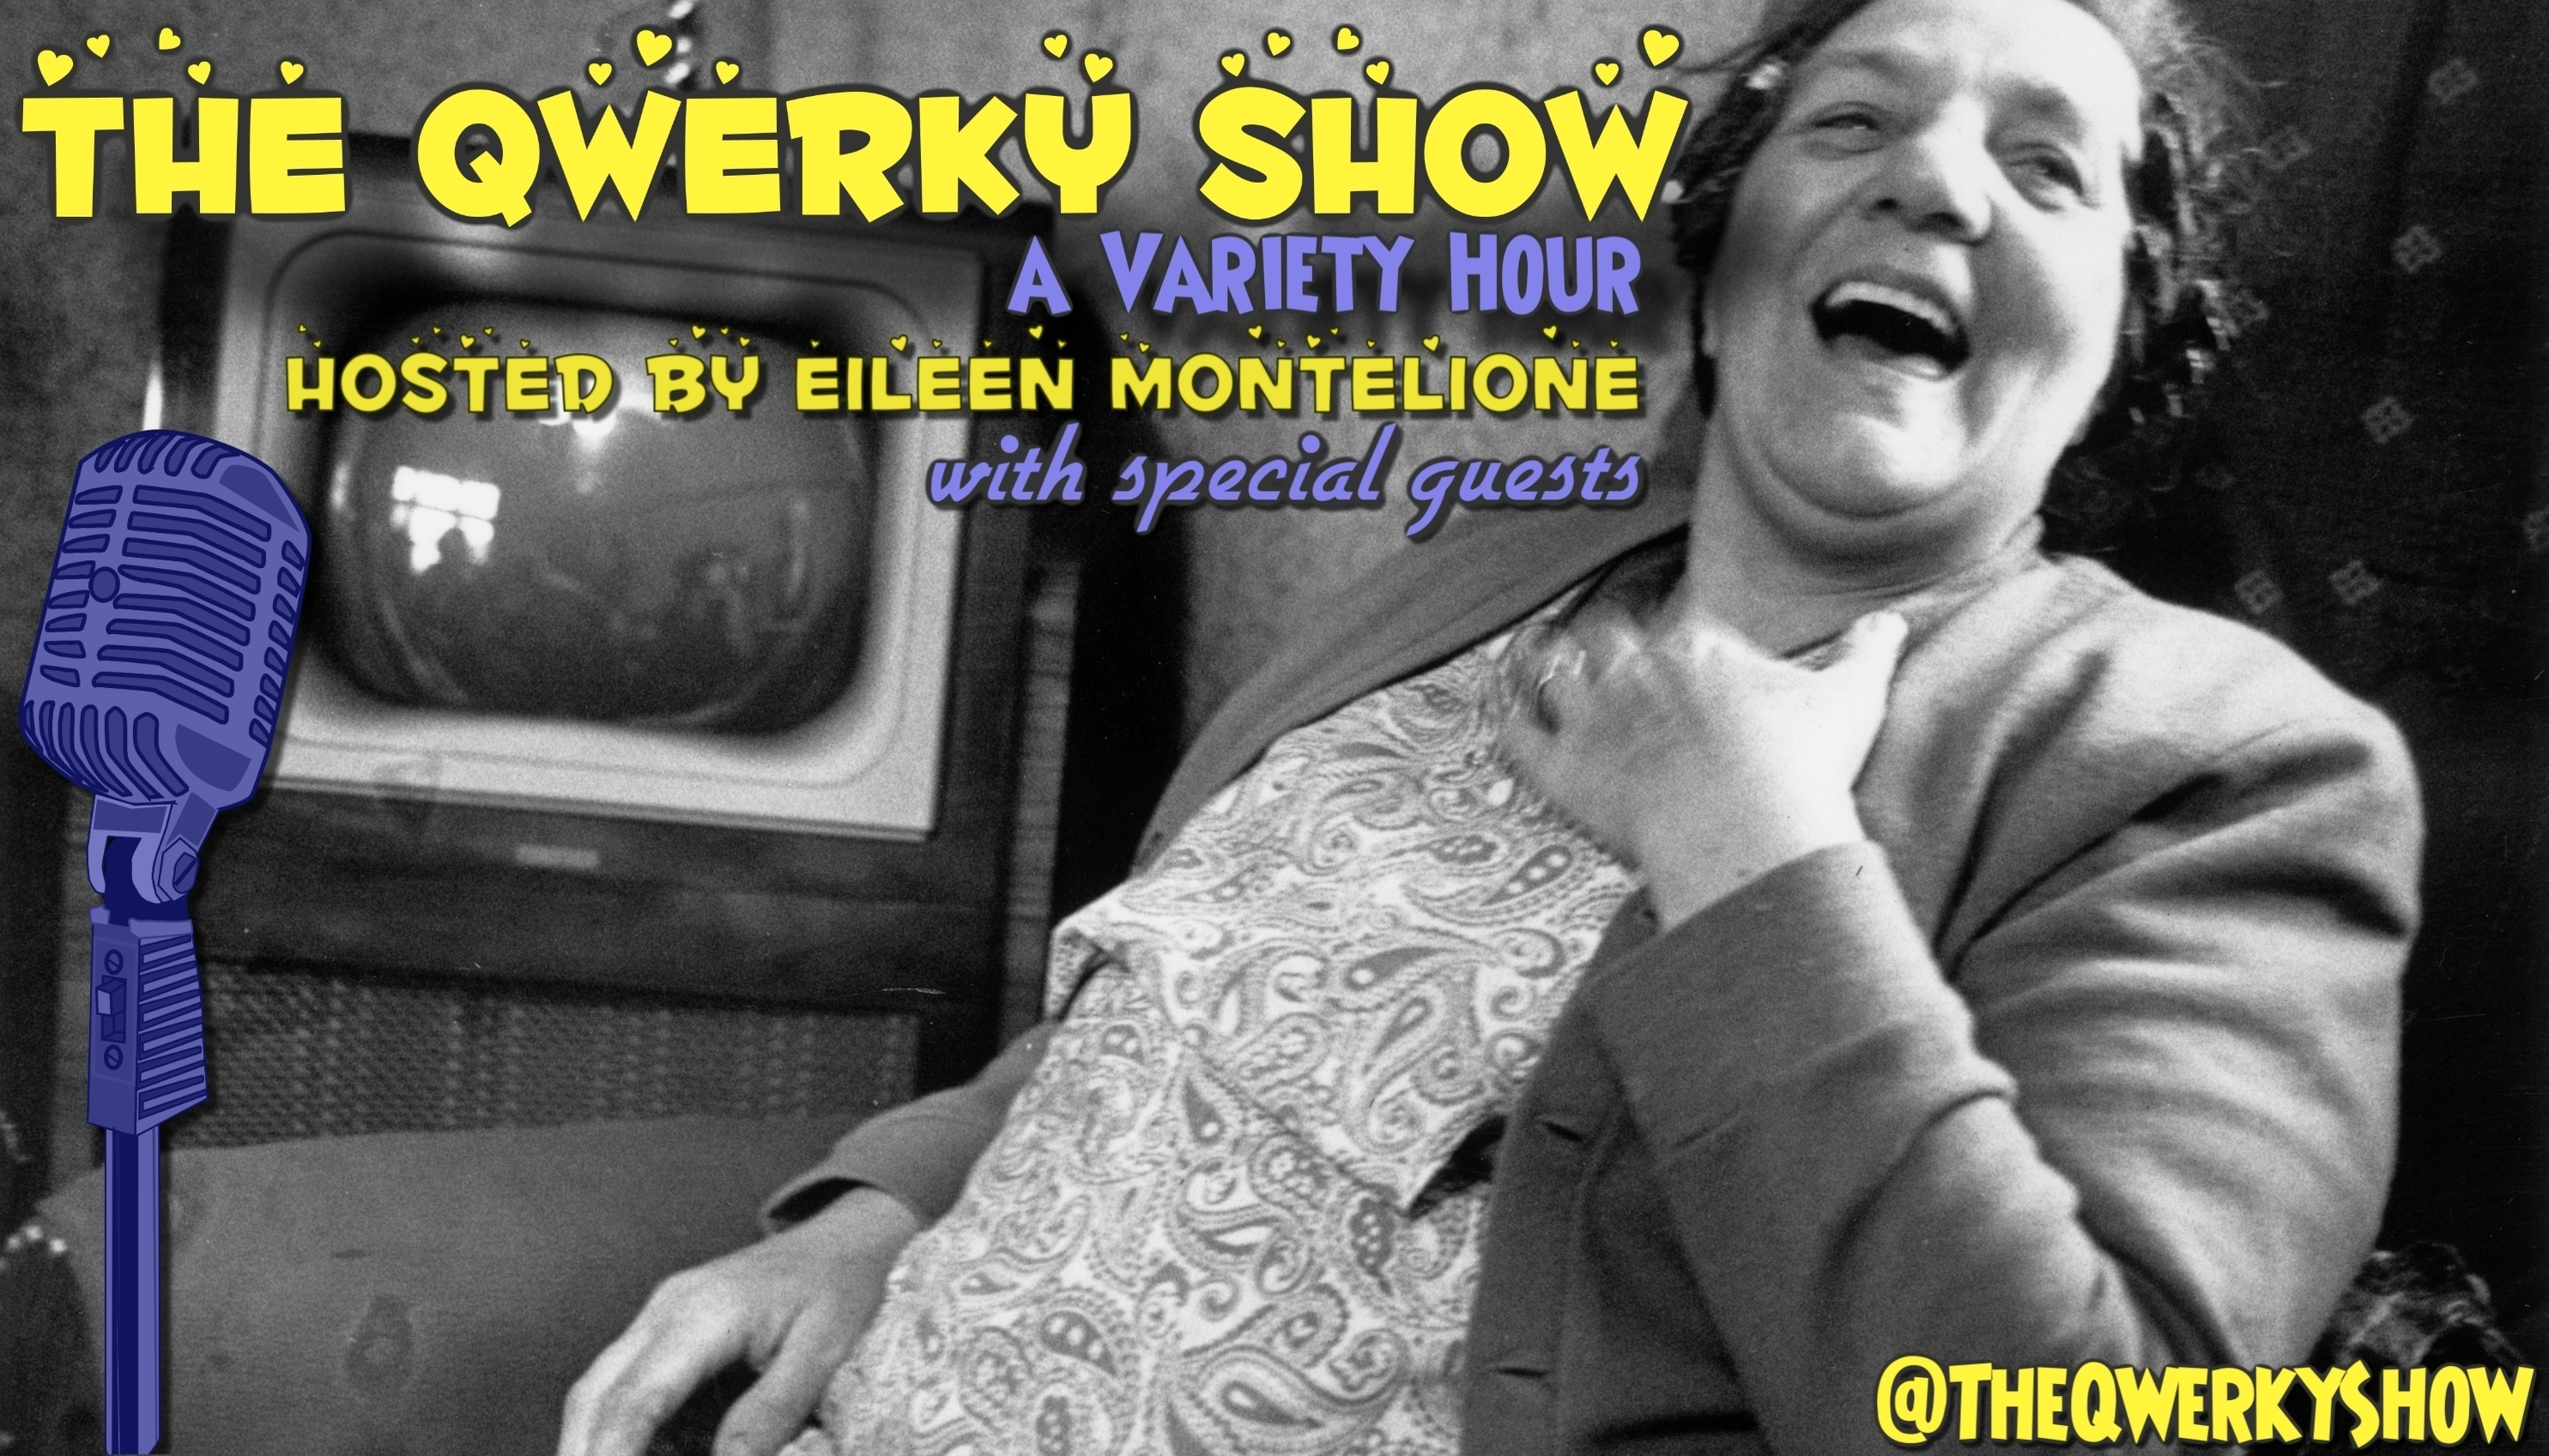 The Qwerky Show